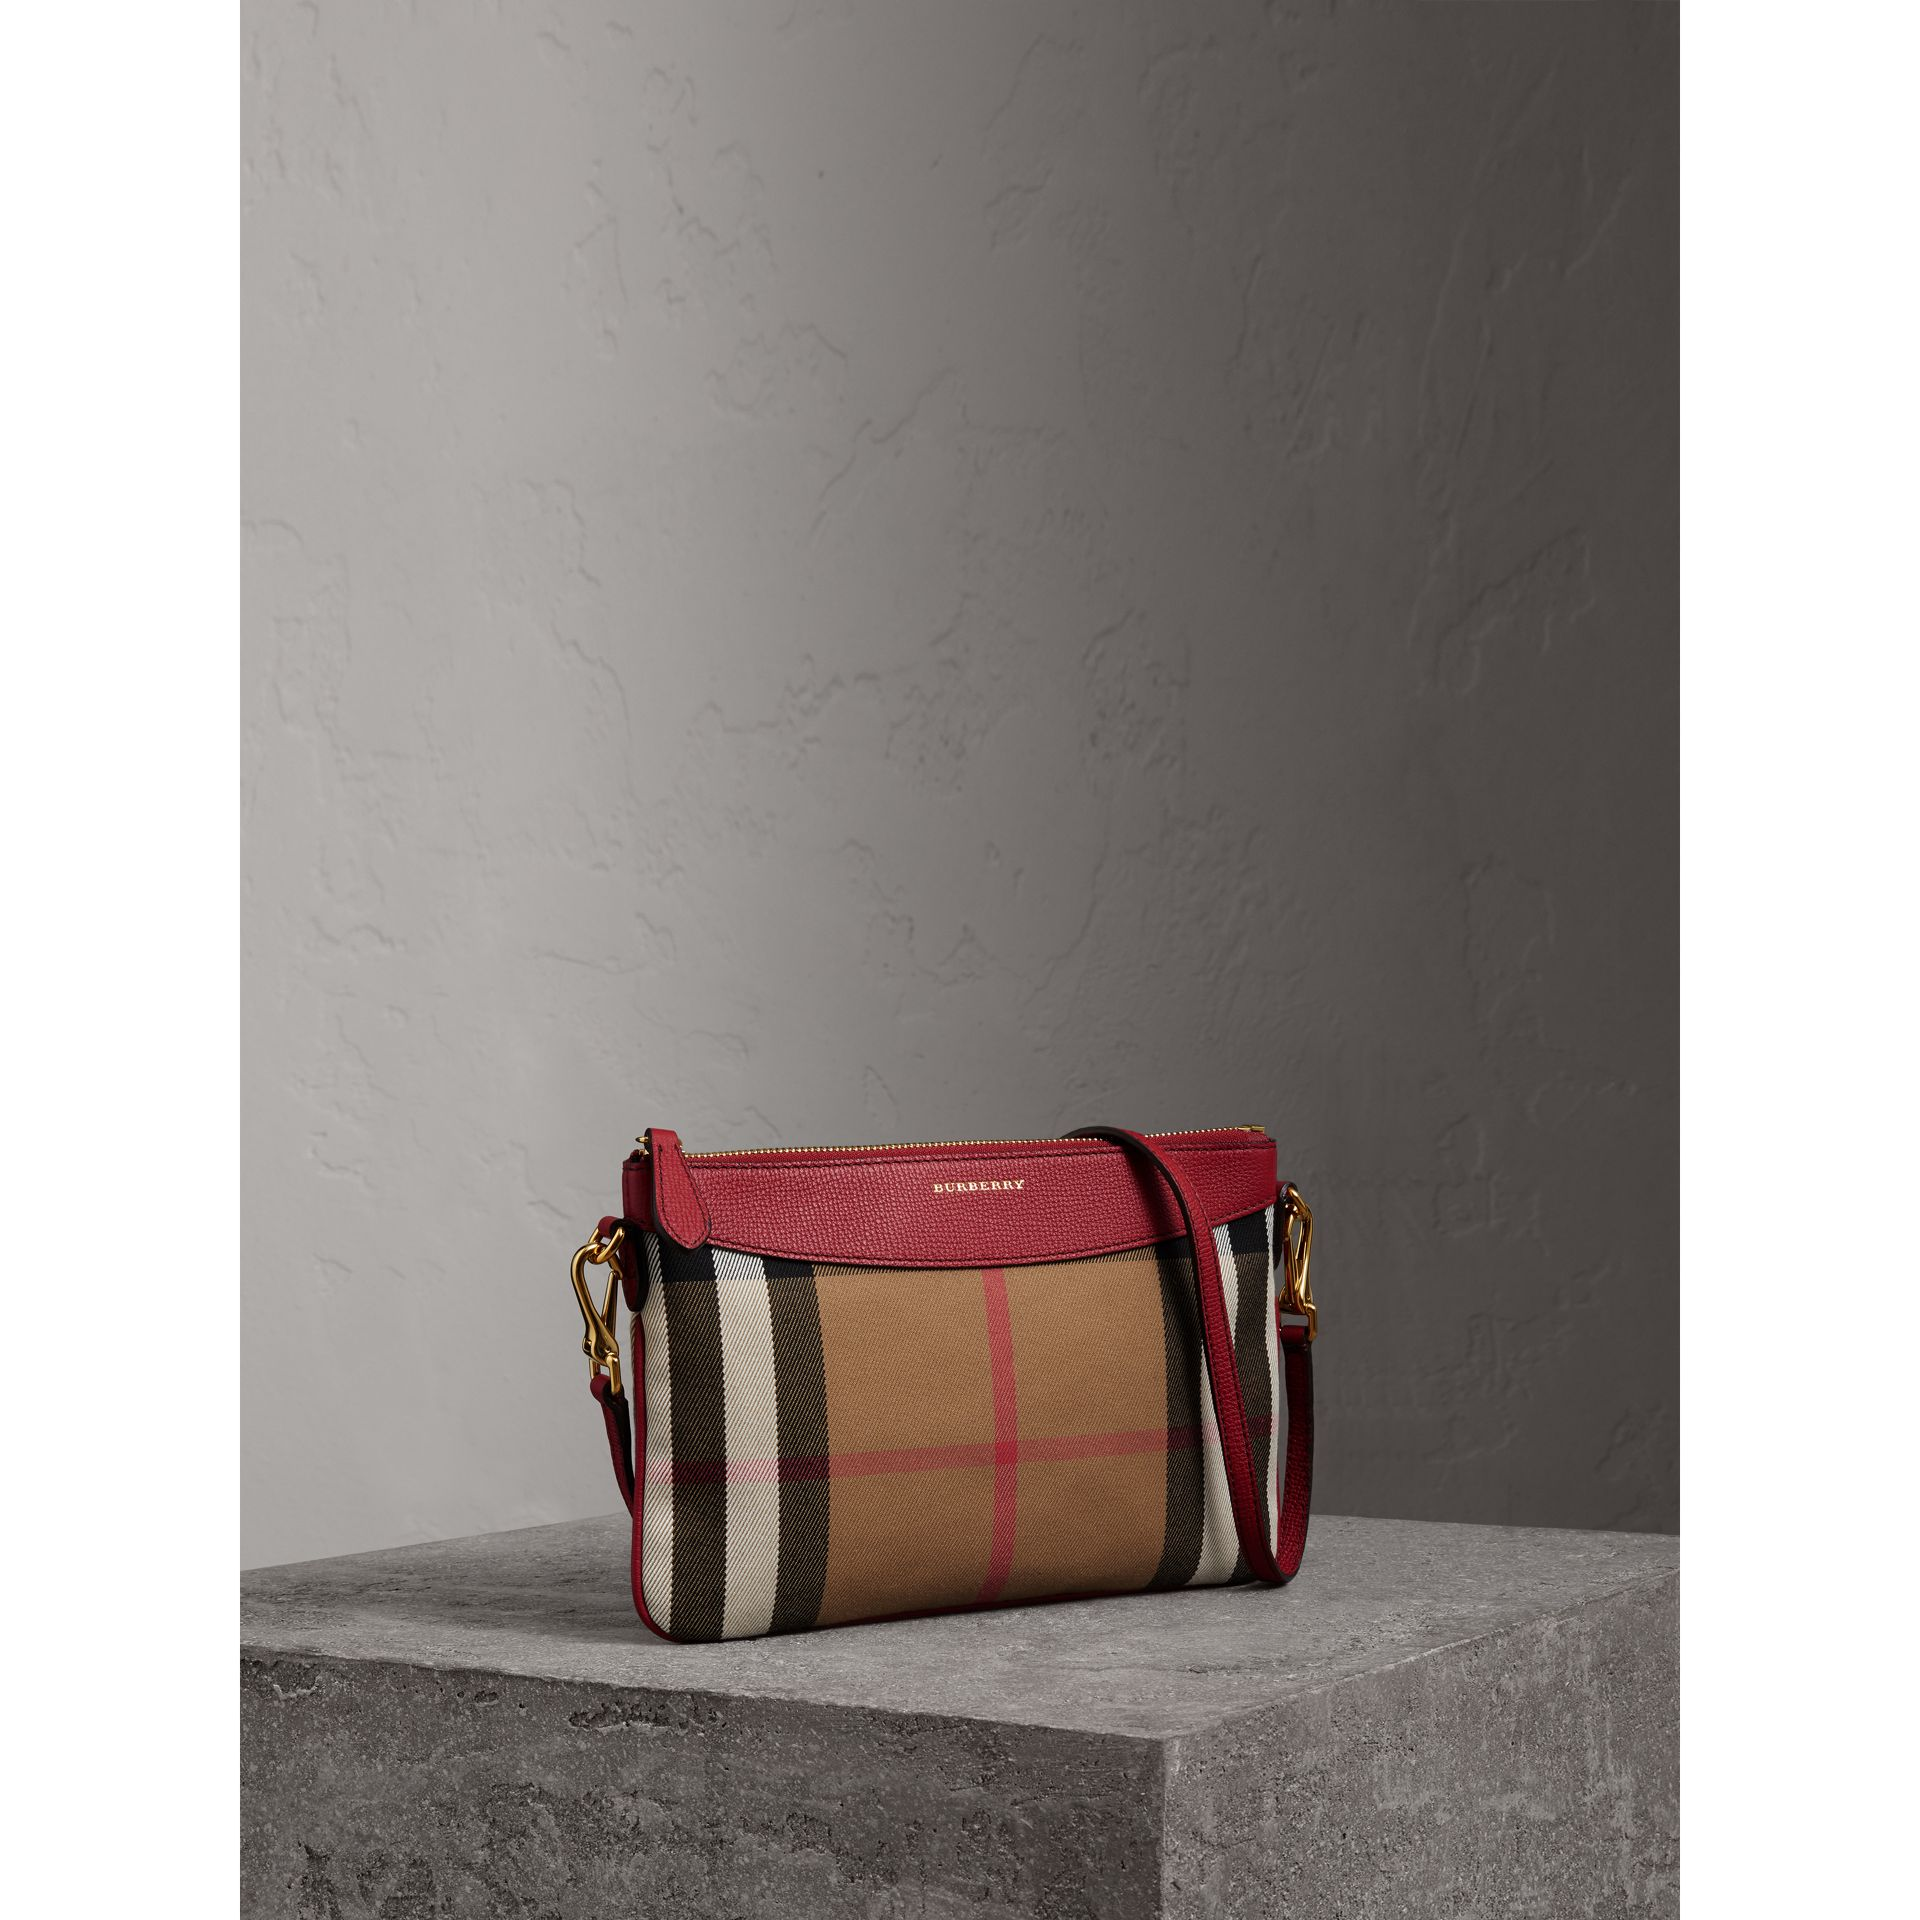 House Check and Leather Clutch Bag in Military Red - Women | Burberry - gallery image 6